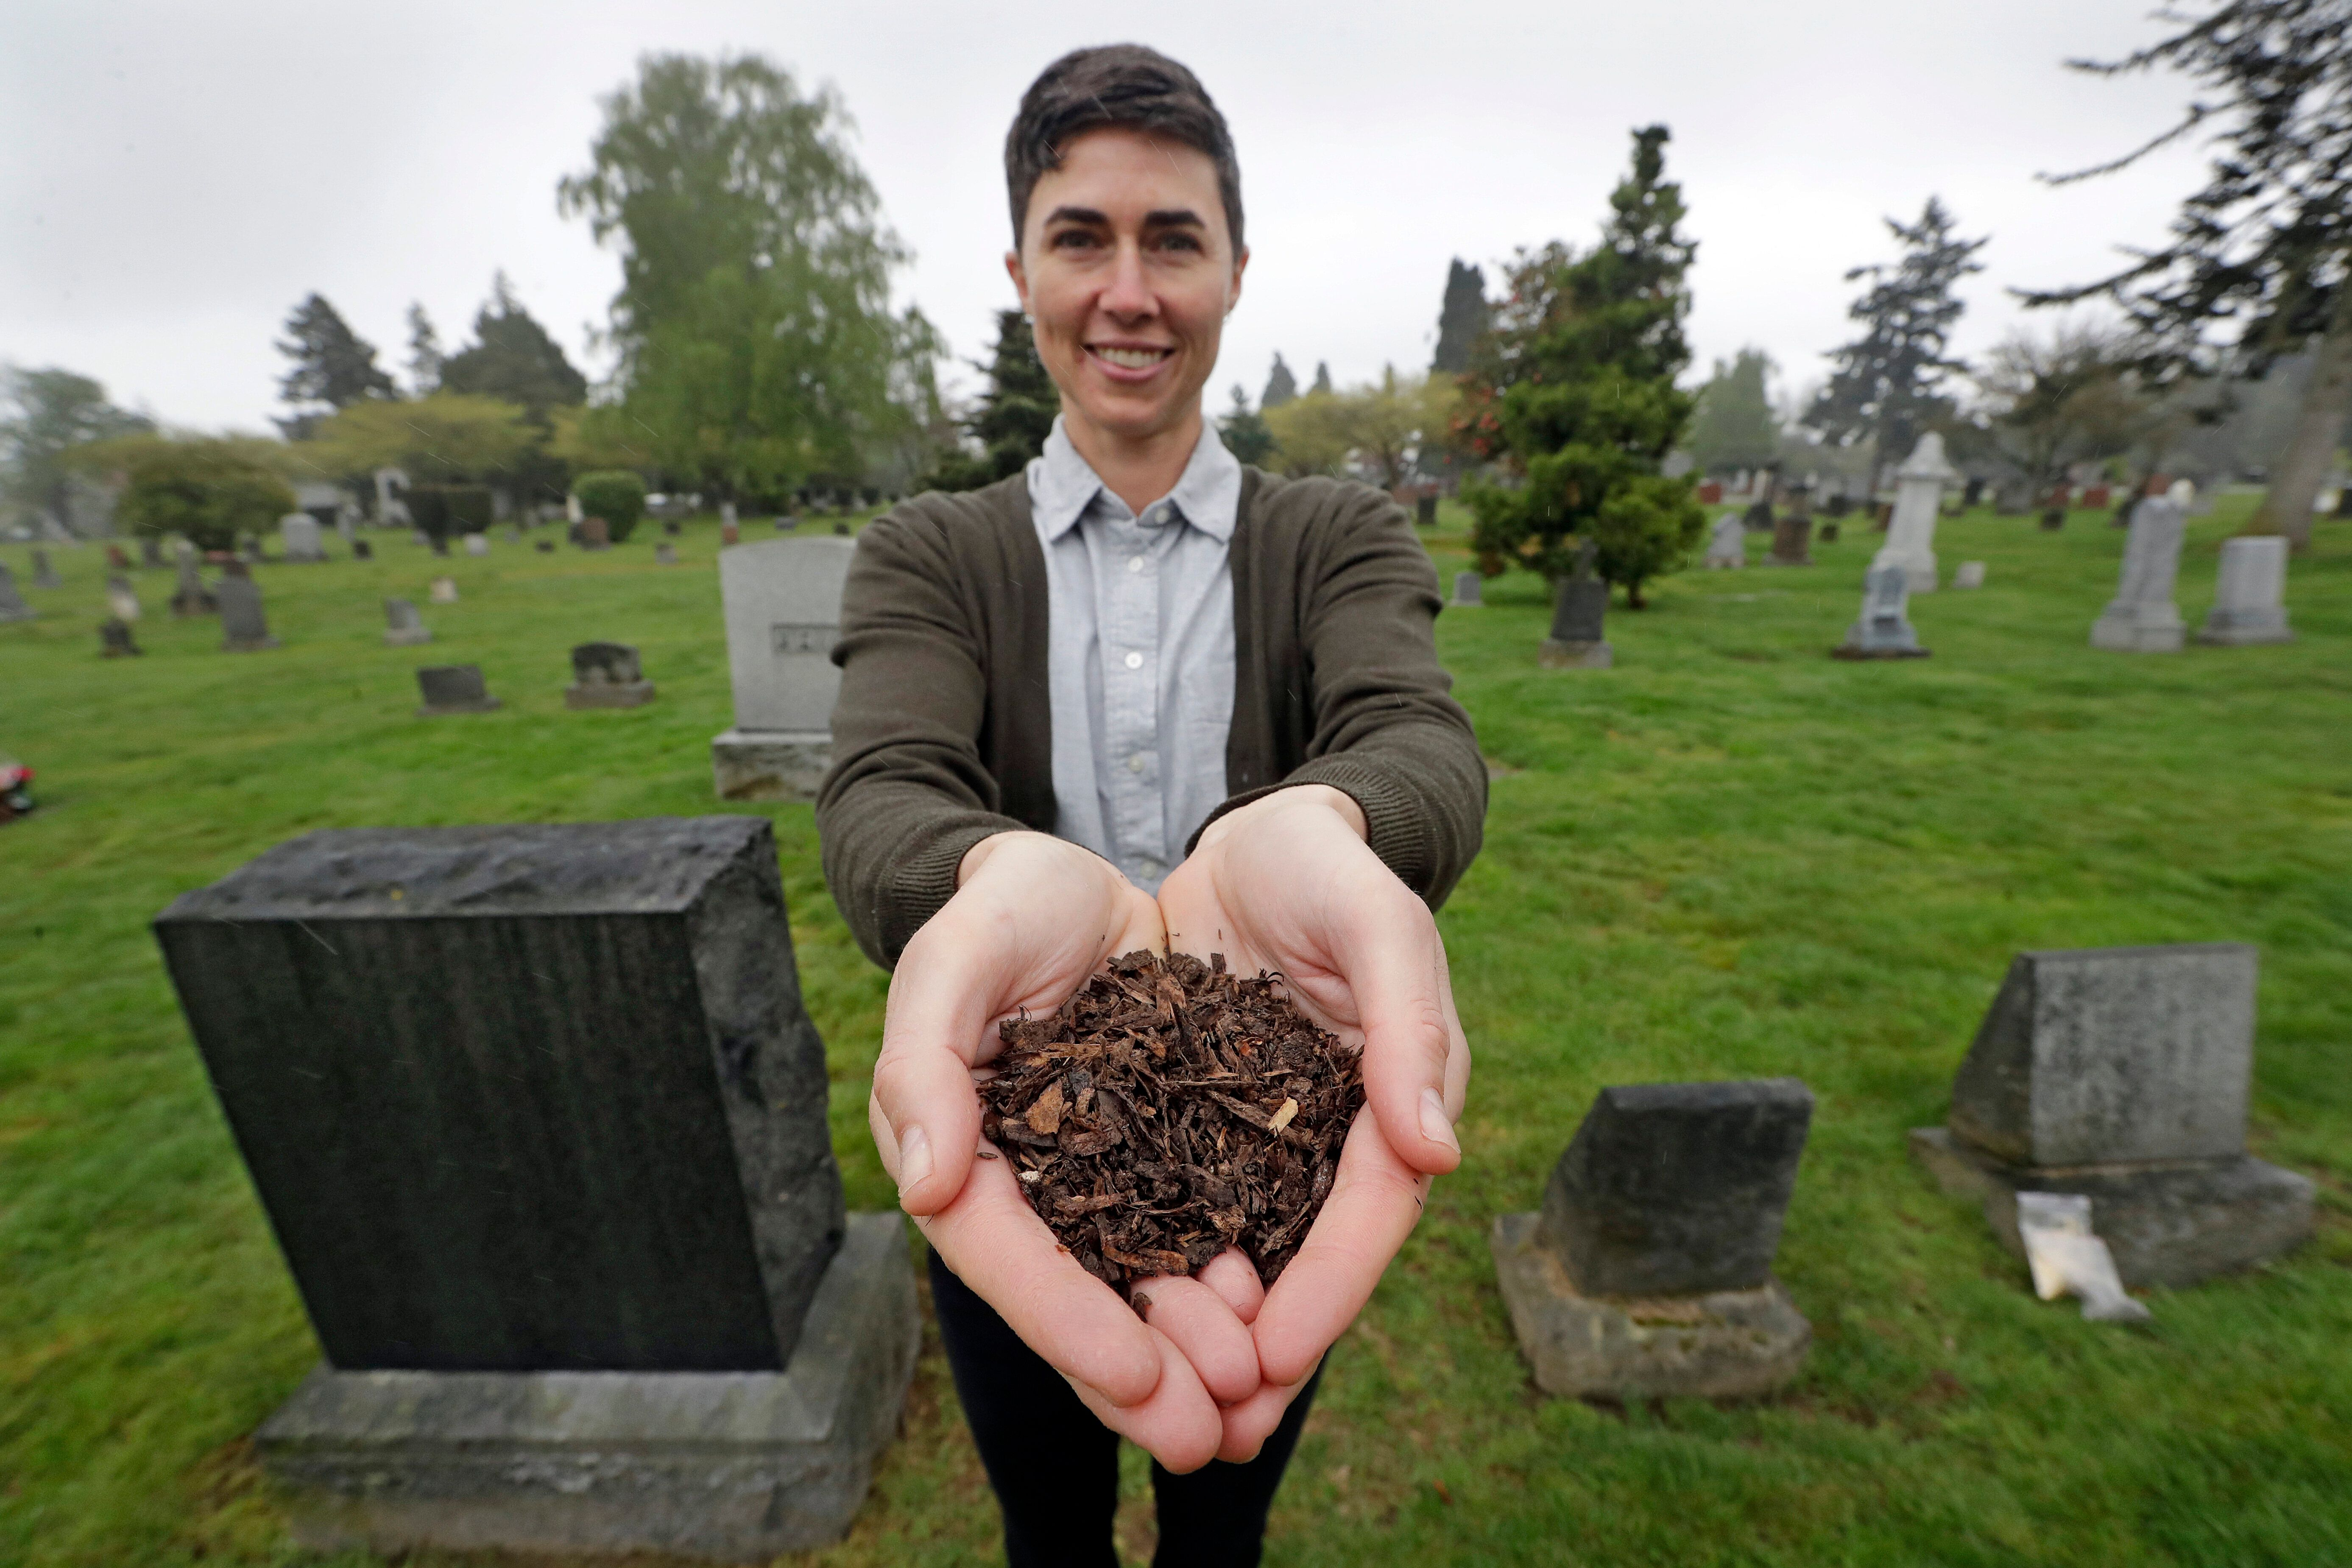 """FILE - In this April 19, 2019, file photo, Katrina Spade, the founder and CEO of Recompose, a company that hopes to use composting as an alternative to burying or cremating human remains, poses for a photo in a cemetery in Seattle, as she displays a sample of compost material left from the decomposition of a cow using a combination of wood chips, alfalfa and straw. On Tuesday, May 21, 2019, Washington Gov. Jay Inslee signed a bill into law that allows licensed facilities to offer """"natural organic reduction,"""" which turns a body, mixed with substances such as wood chips and straw, into soil in a span of several weeks. Th law makes Washington the first state in the U.S. to approve composting as an alternative to burying or cremating human remains. (AP Photo/Elaine Thompson, File)"""